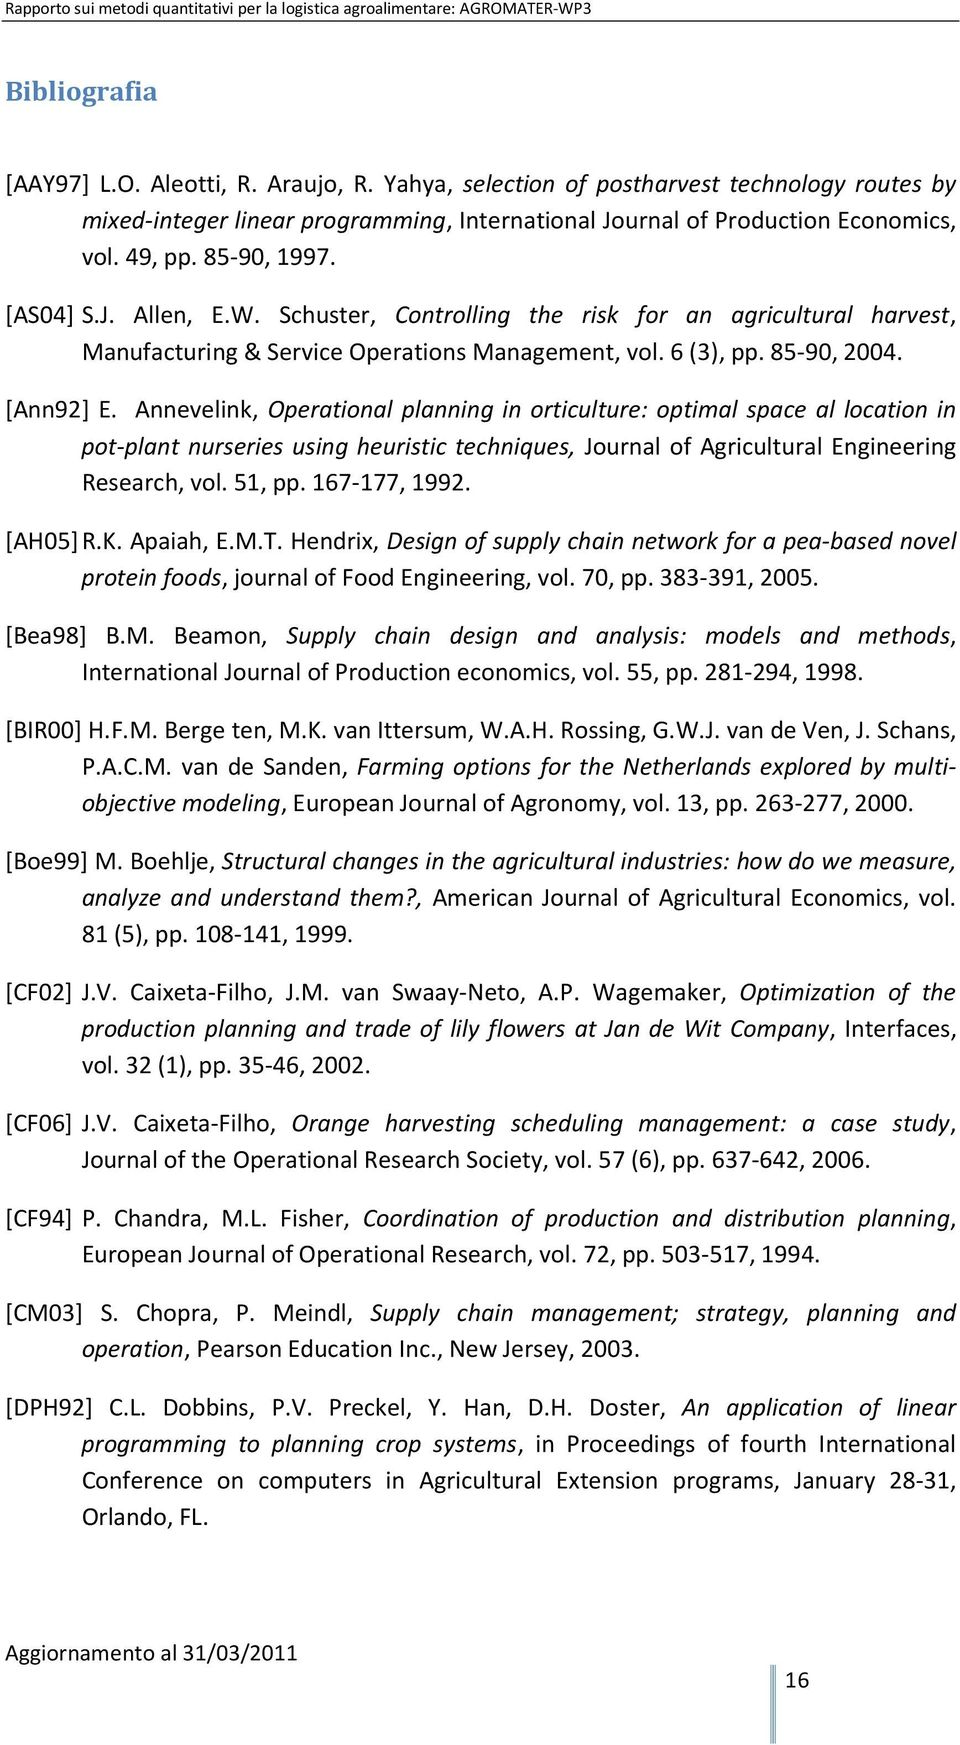 Annevelink, Operational planning in orticulture: optimal space al location in pot-plant nurseries using heuristic techniques, Journal of Agricultural Engineering Research, vol. 51, pp. 167-177, 1992.